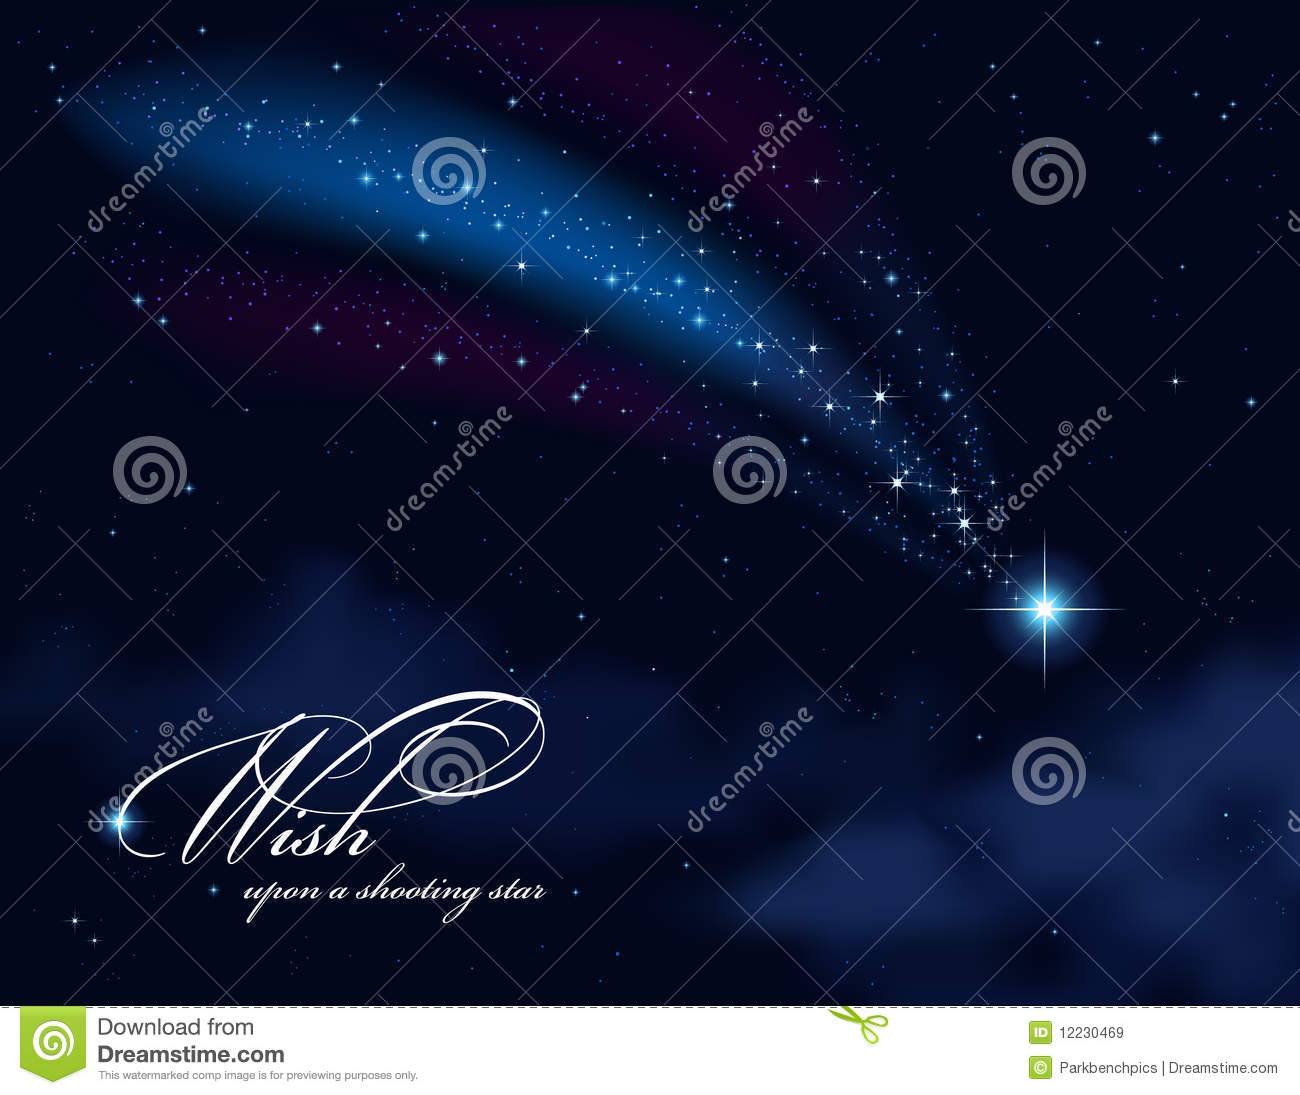 Wish illustrations and clipart 106999  Can Stock Photo